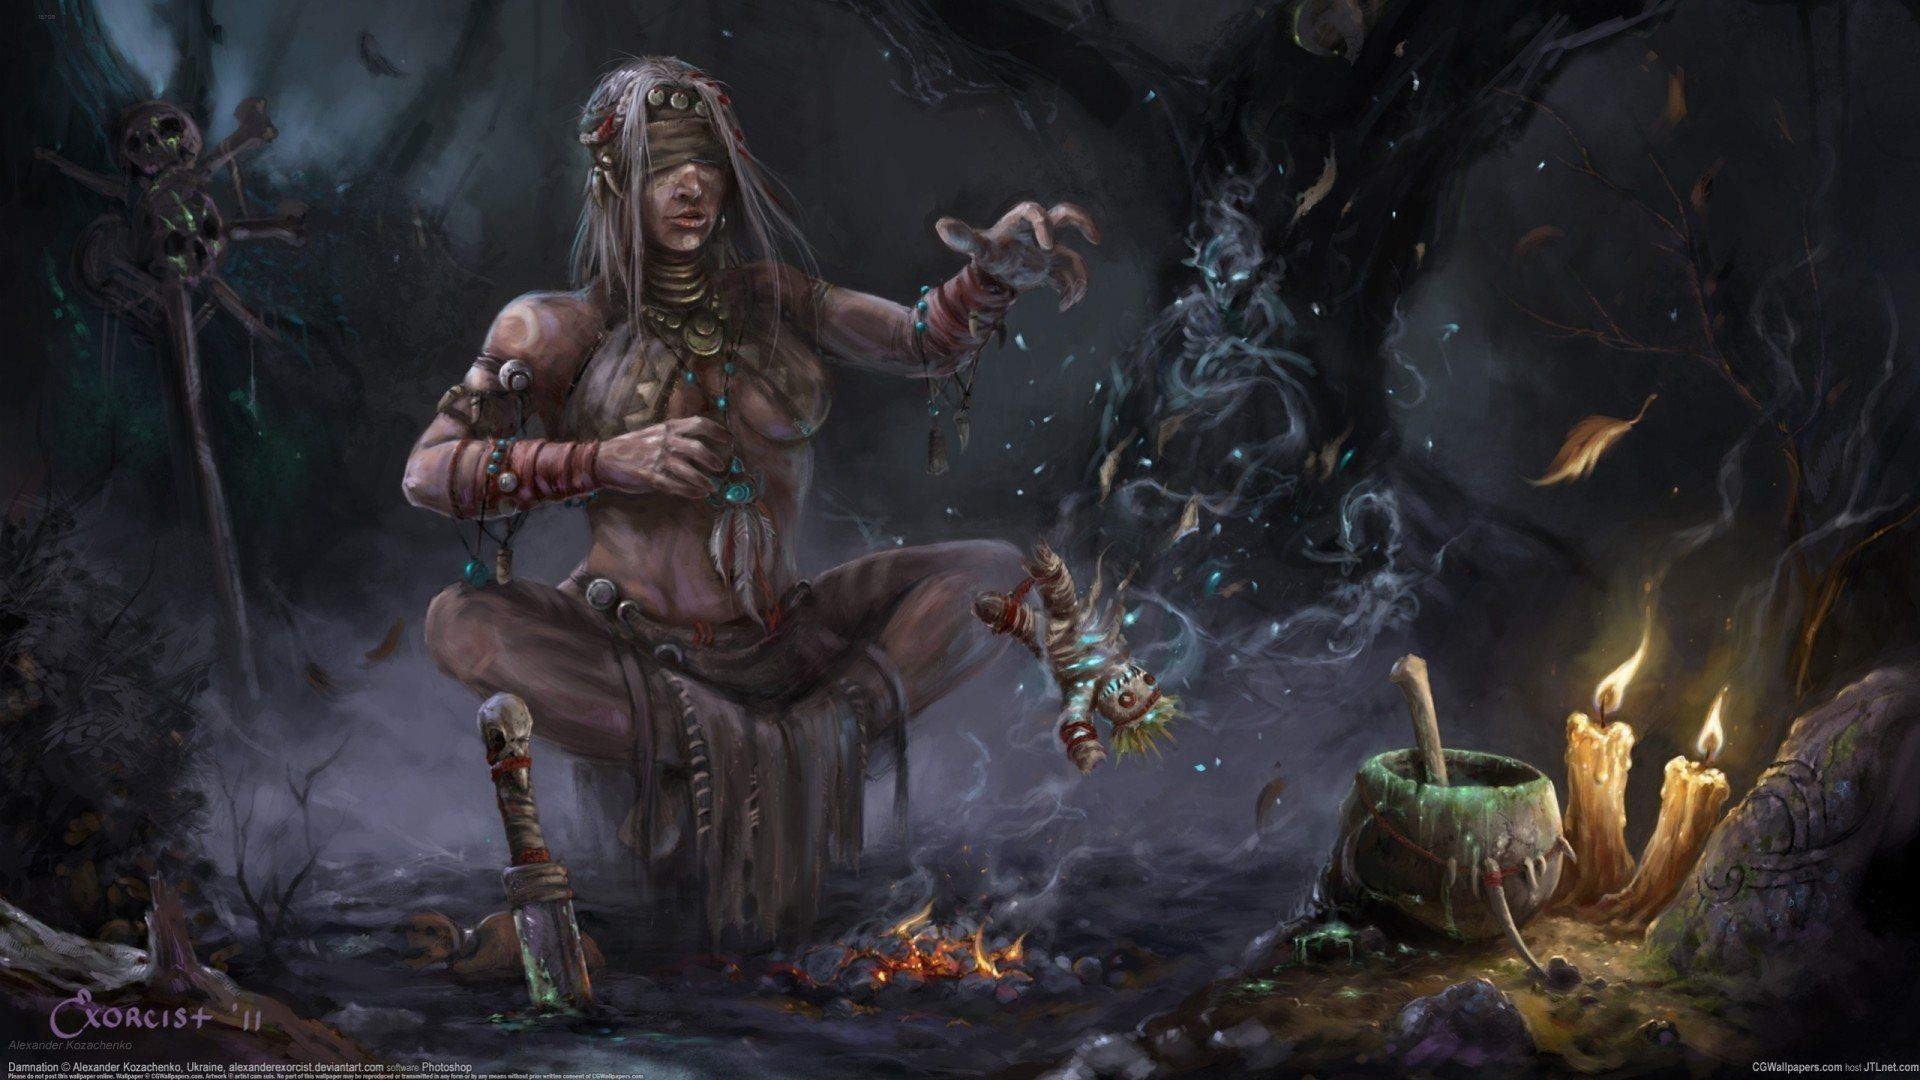 Shaman Voodoo Doll Witchcraft Witch Candles Fire Magic Skull Fragments Hd Wallpaper Witch Doctor Art Fantasy Wizard